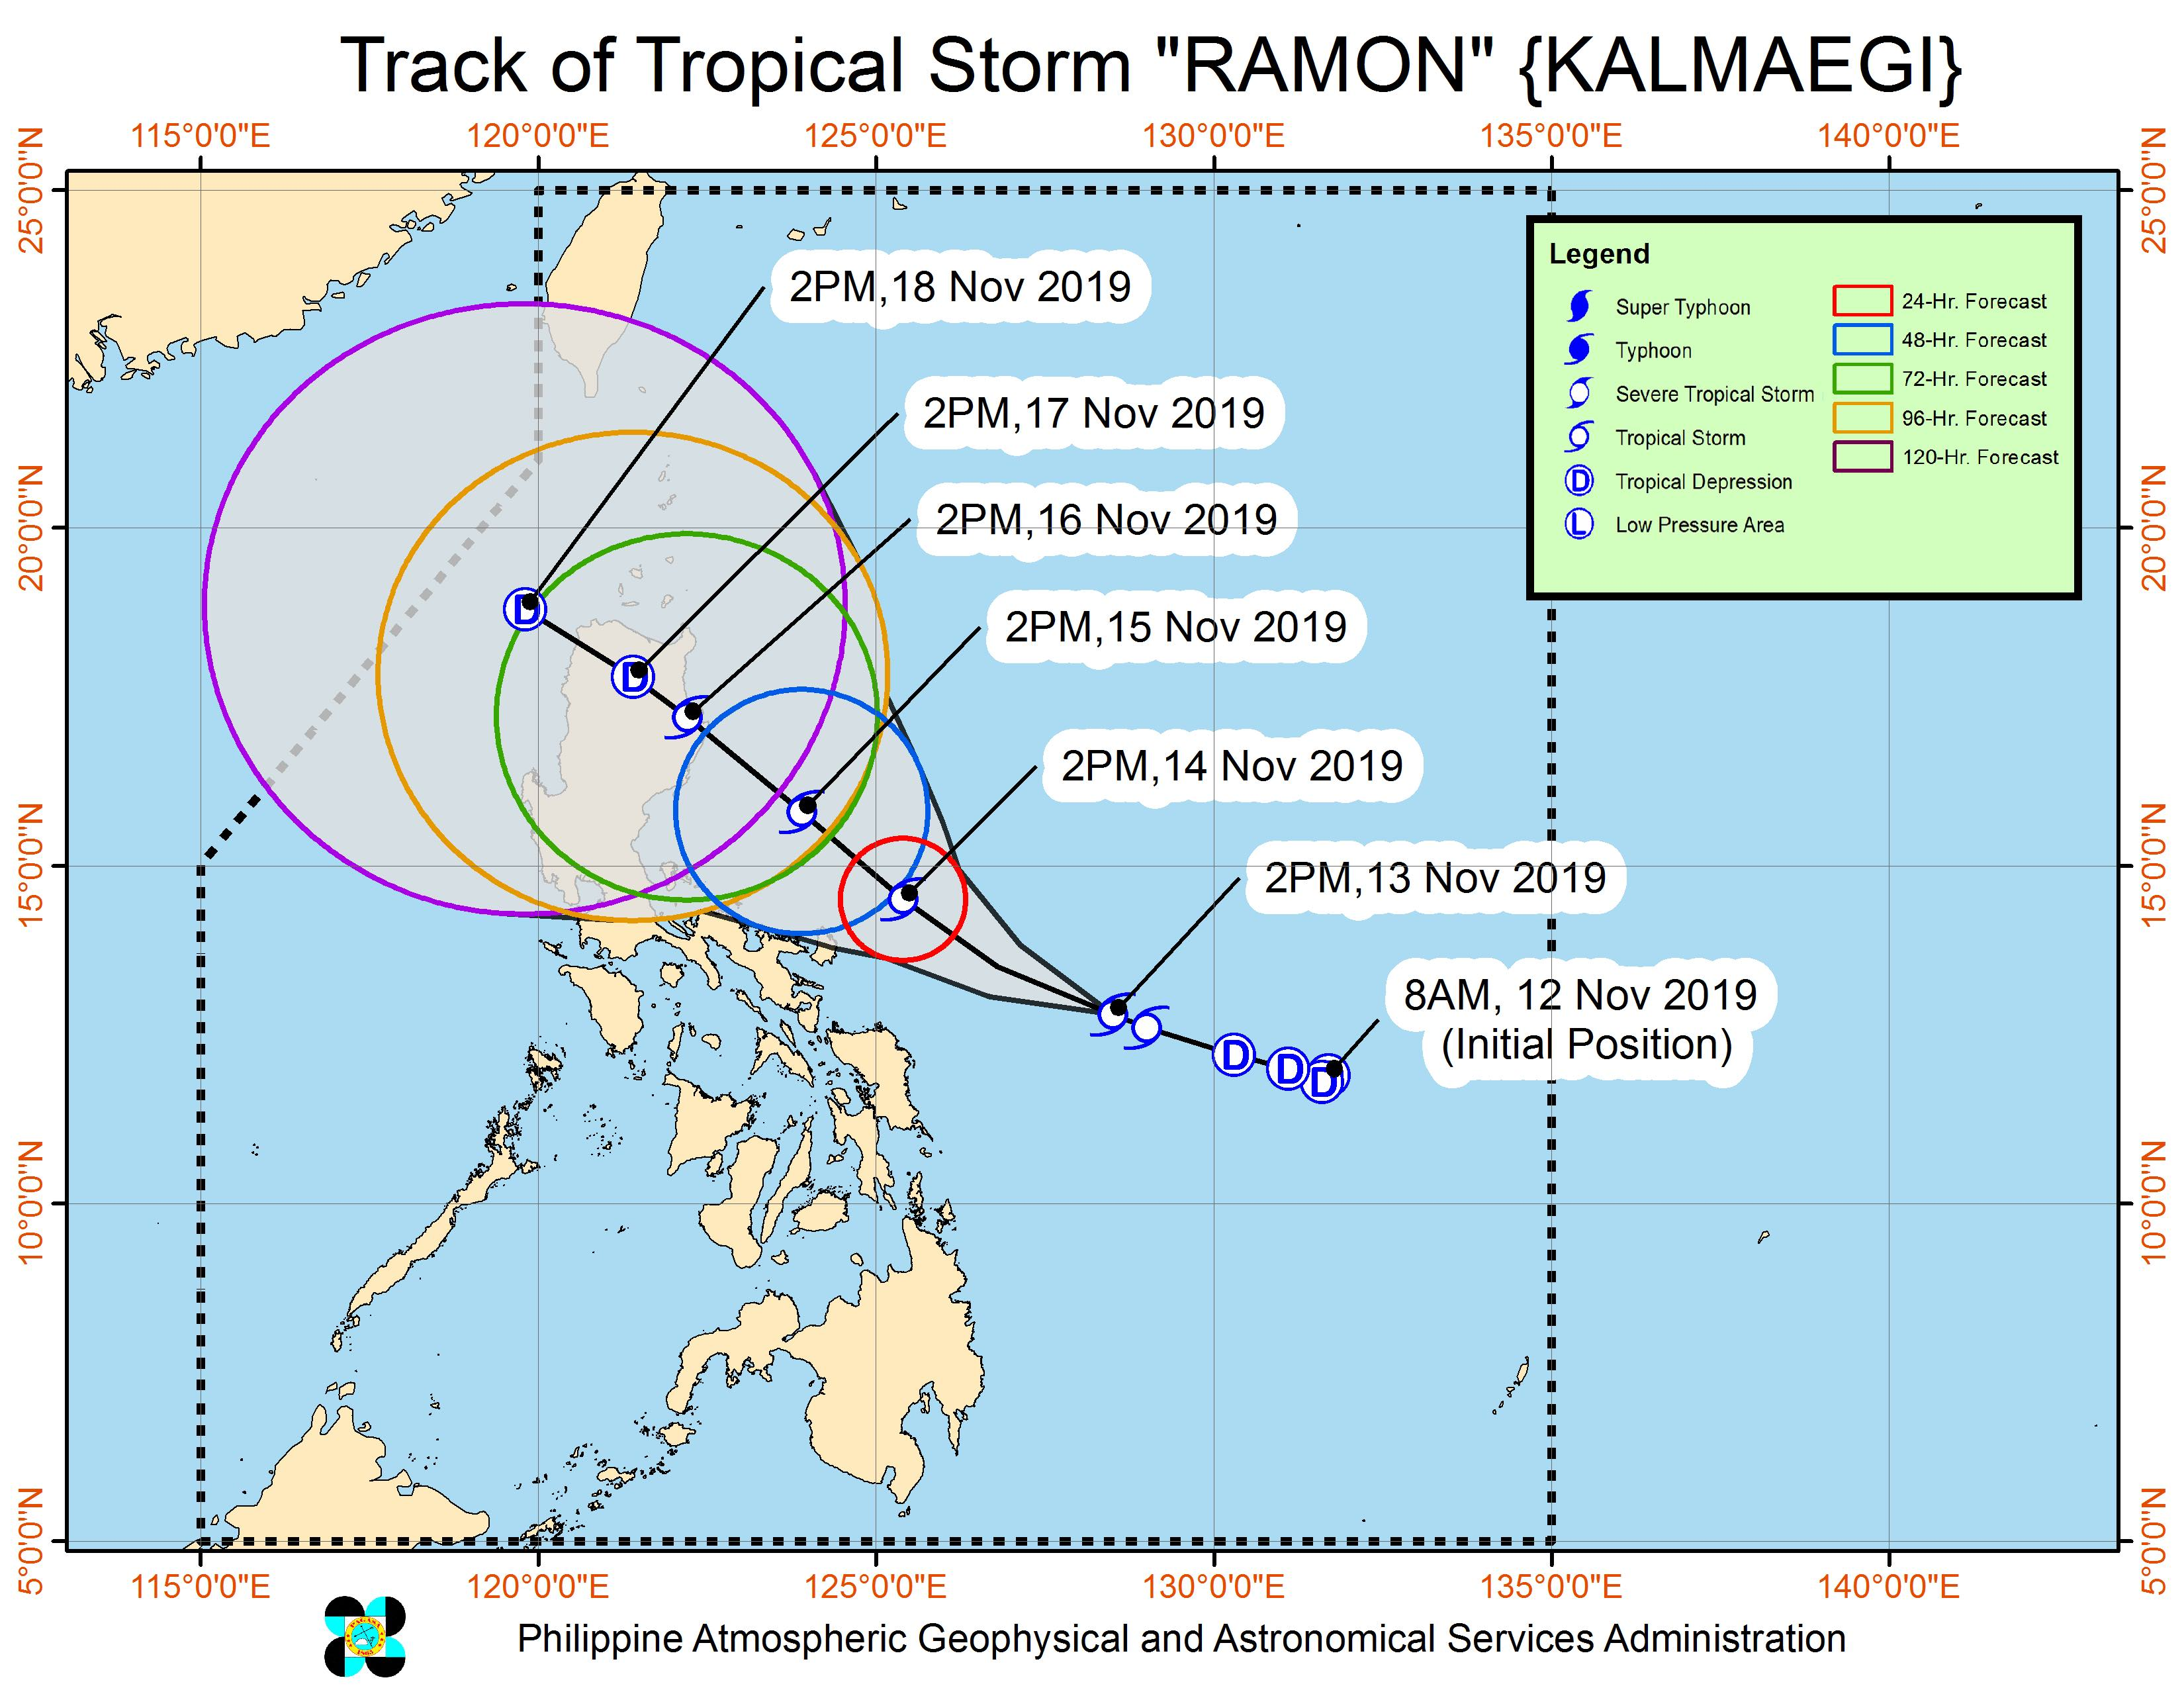 Forecast track of Tropical Storm Ramon (Kalmaegi) as of November 13, 2019, 5 pm. Image from PAGASA